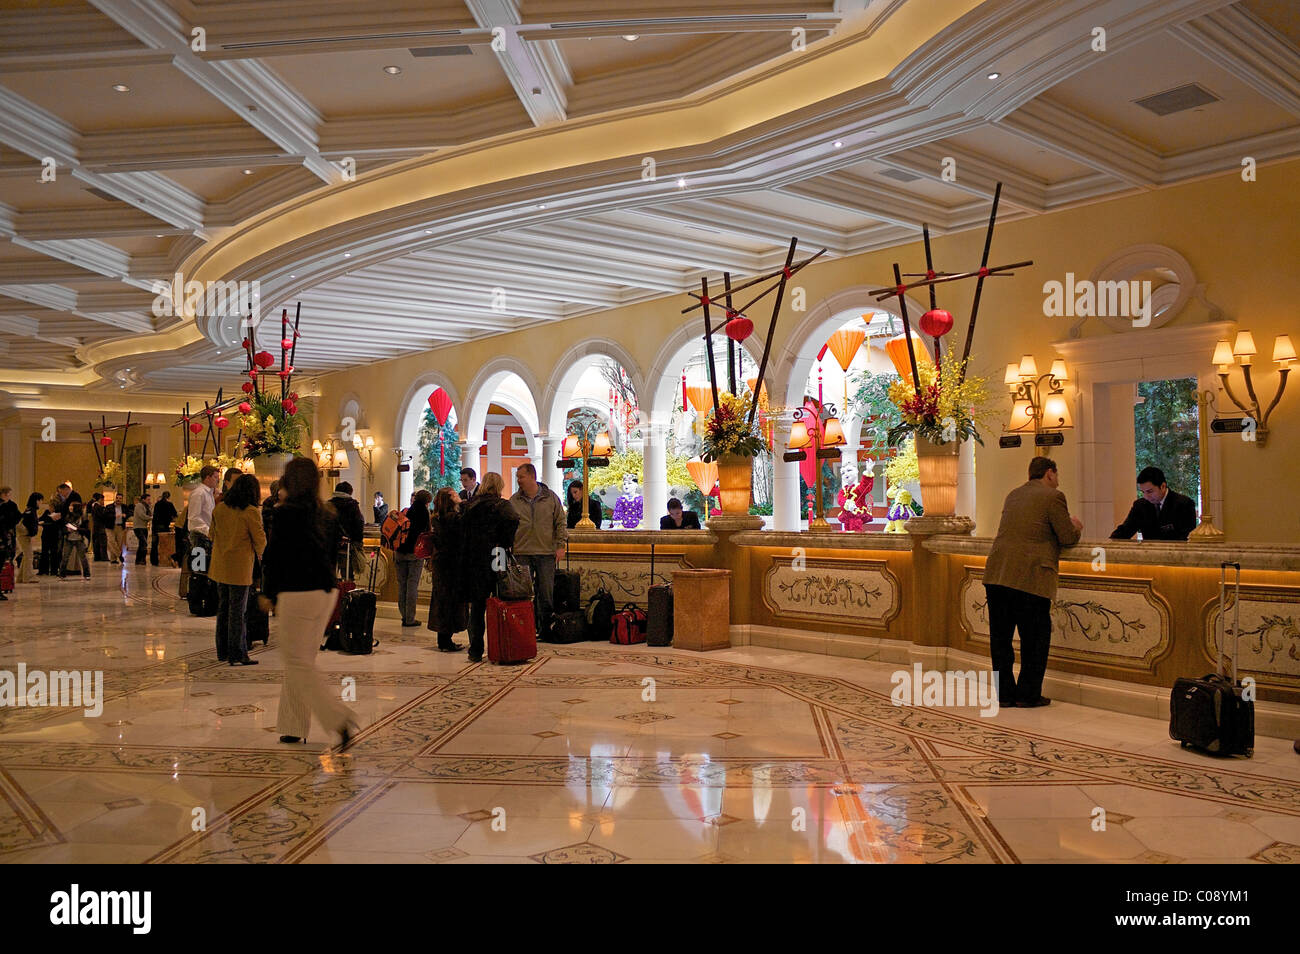 The Front Desk Of The Bellagio Hotel In Las Vegas Stock